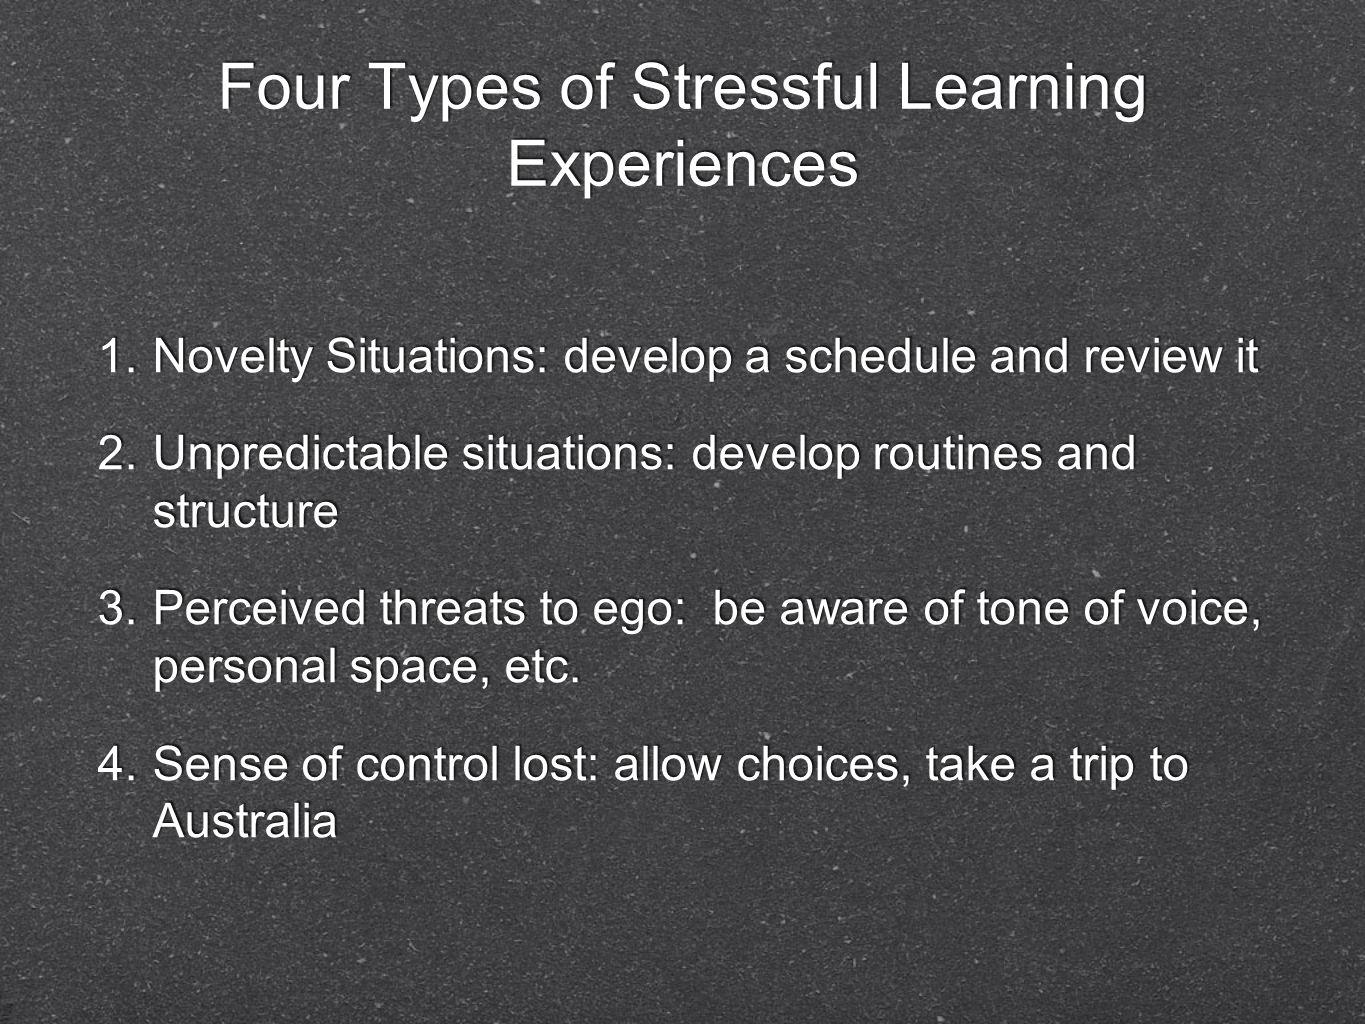 Four Types of Stressful Learning Experiences